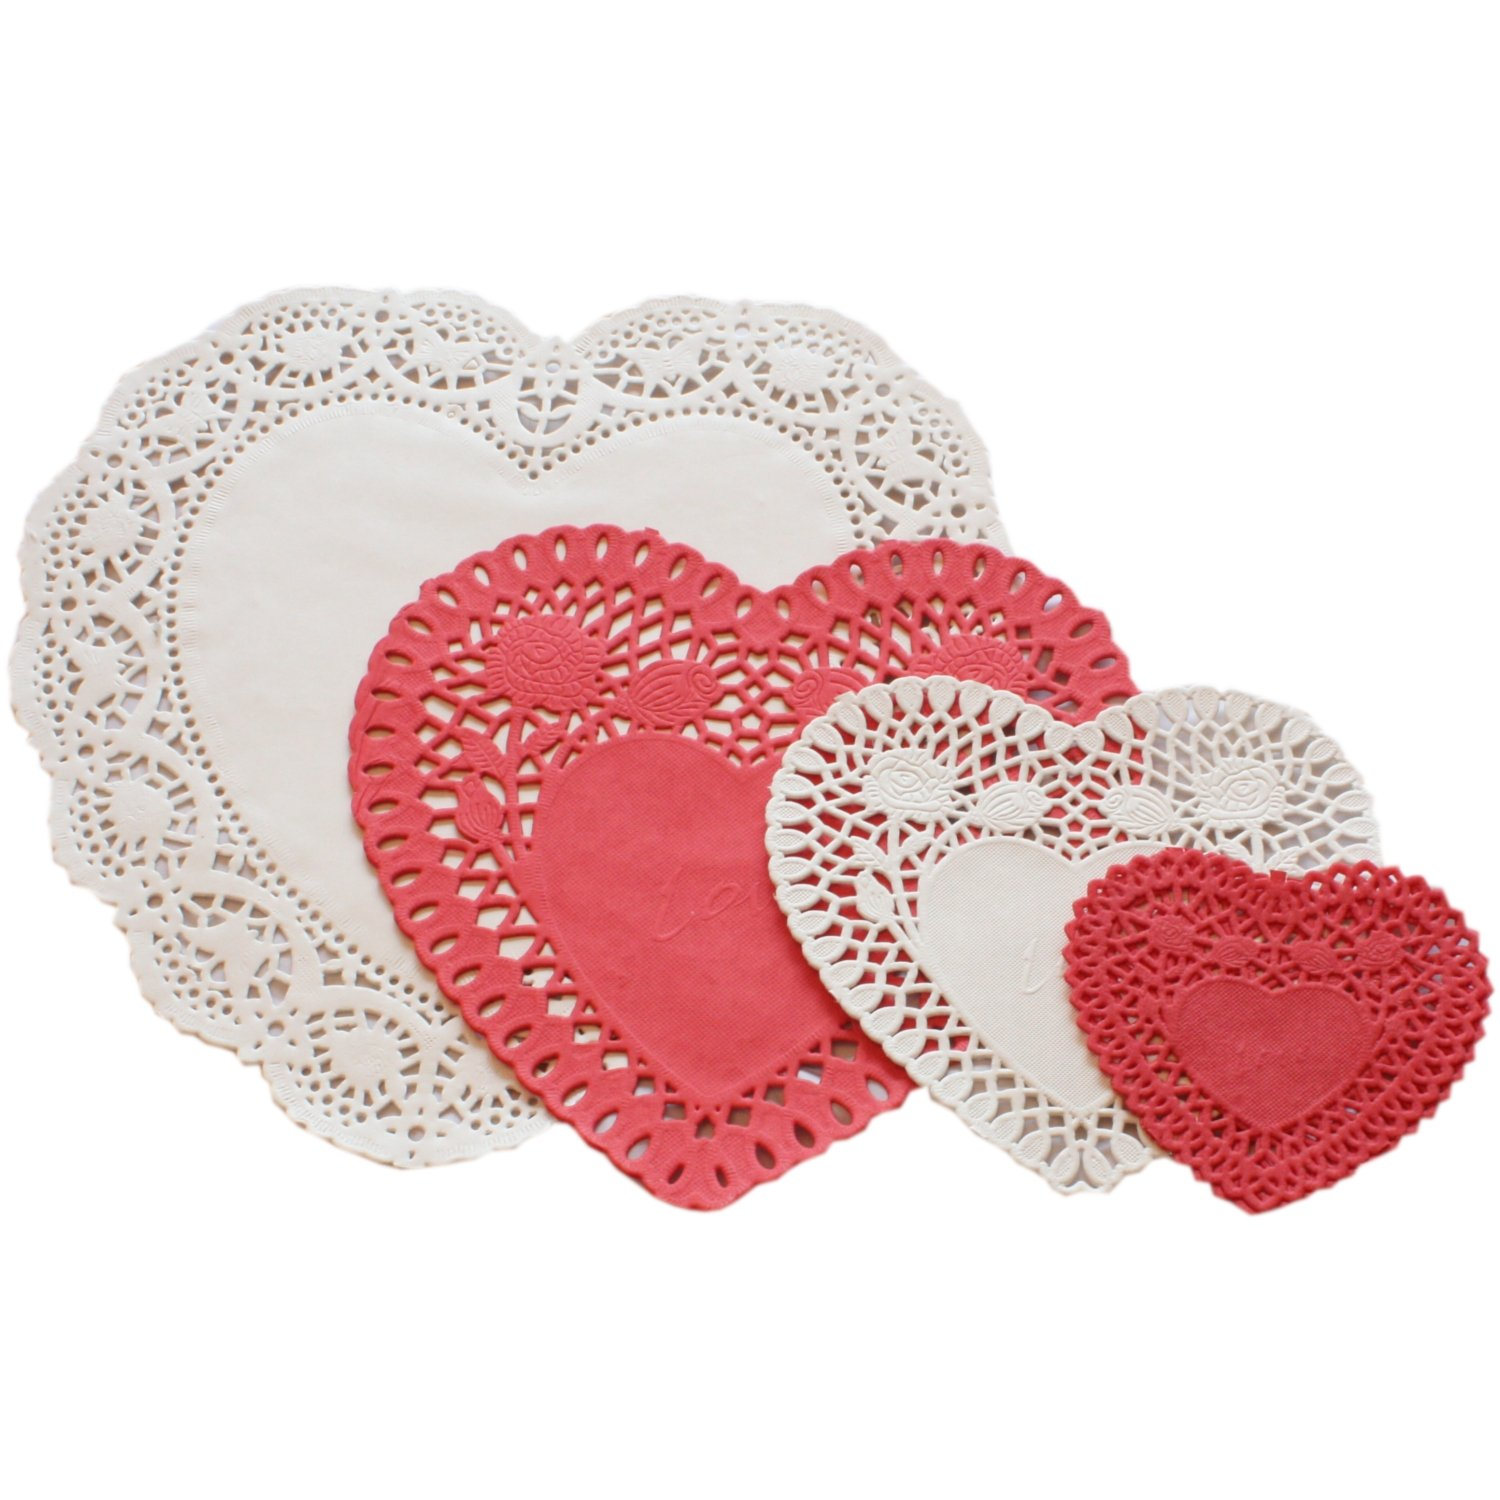 24 Red White Heart Paper Doilies Kitchen Home Doyleys